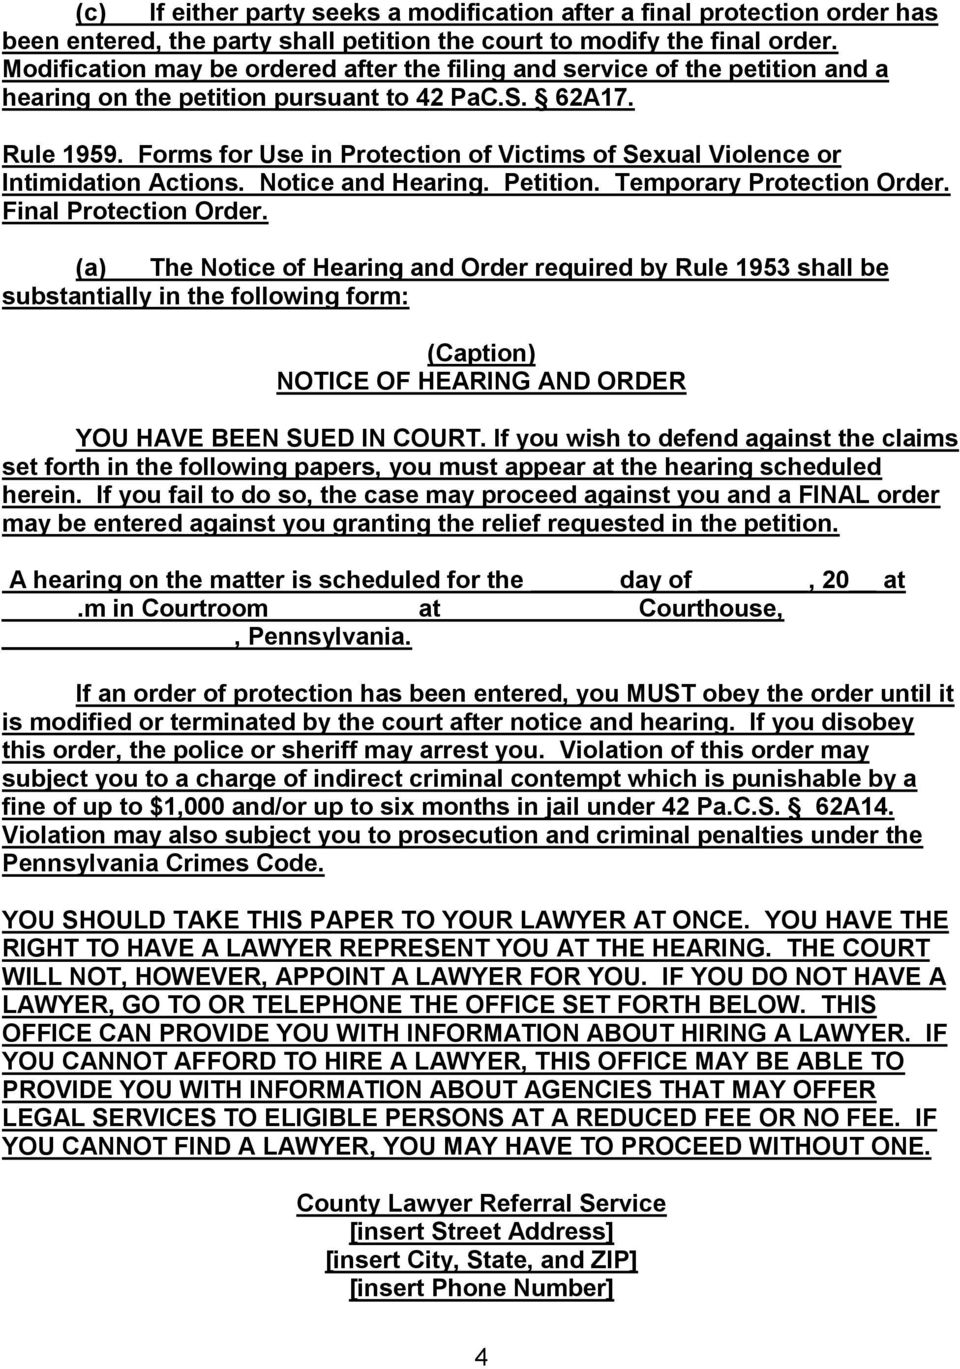 Forms for Use in Protection of Victims of Sexual Violence or Intimidation Actions. Notice and Hearing. Petition. Temporary Protection Order. Final Protection Order.